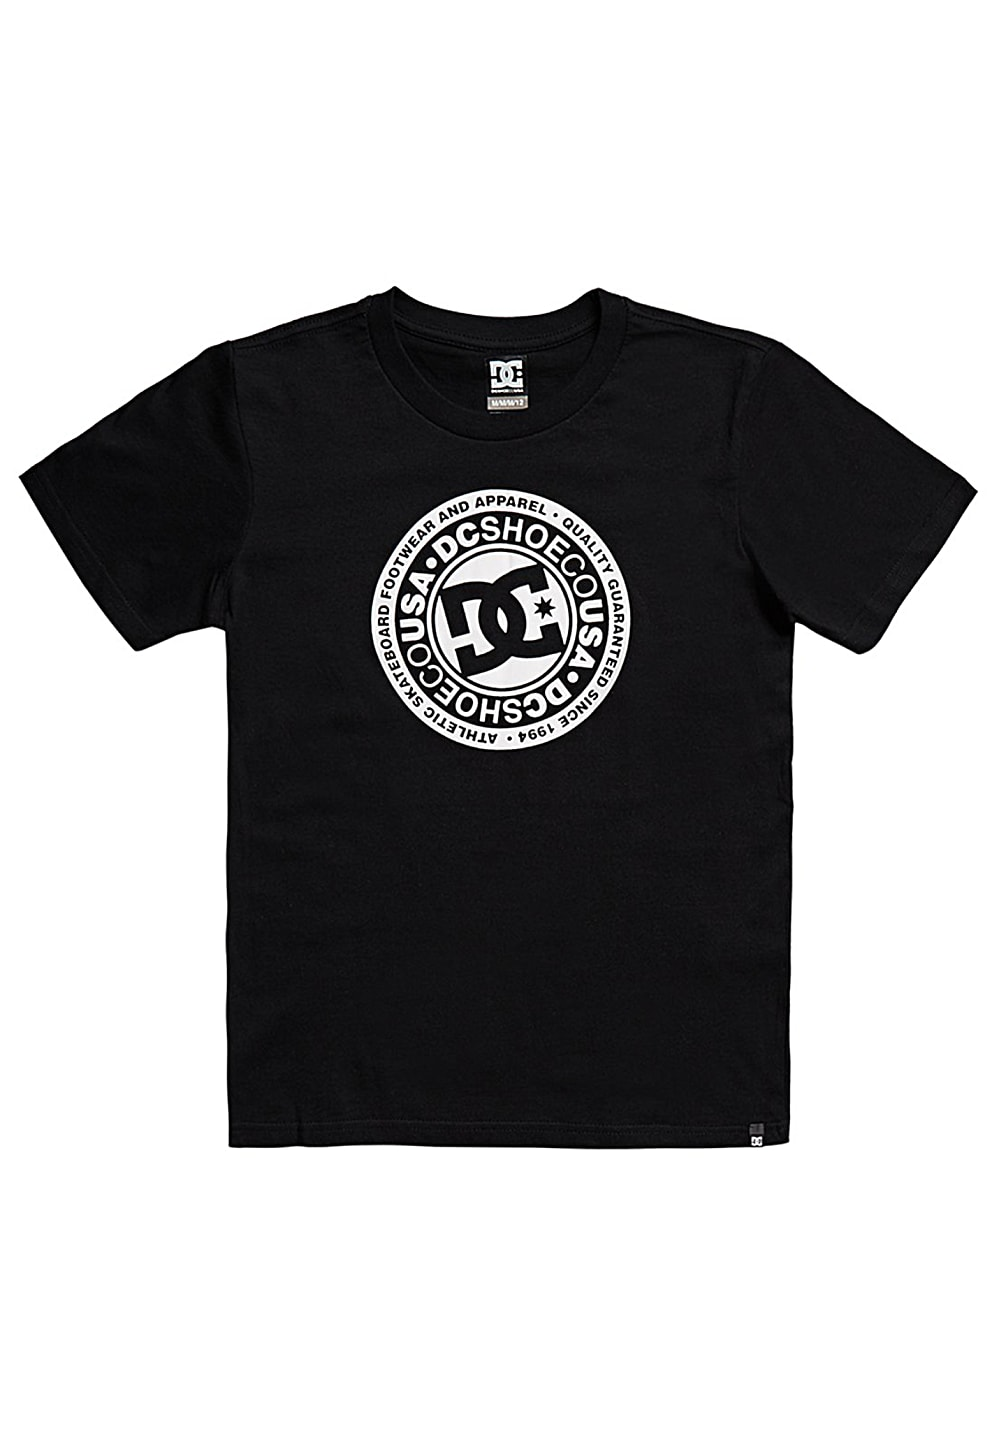 Boysoberteile - DC Circle Star 8 16 T-Shirt für Jungs Schwarz - Onlineshop Planet Sports